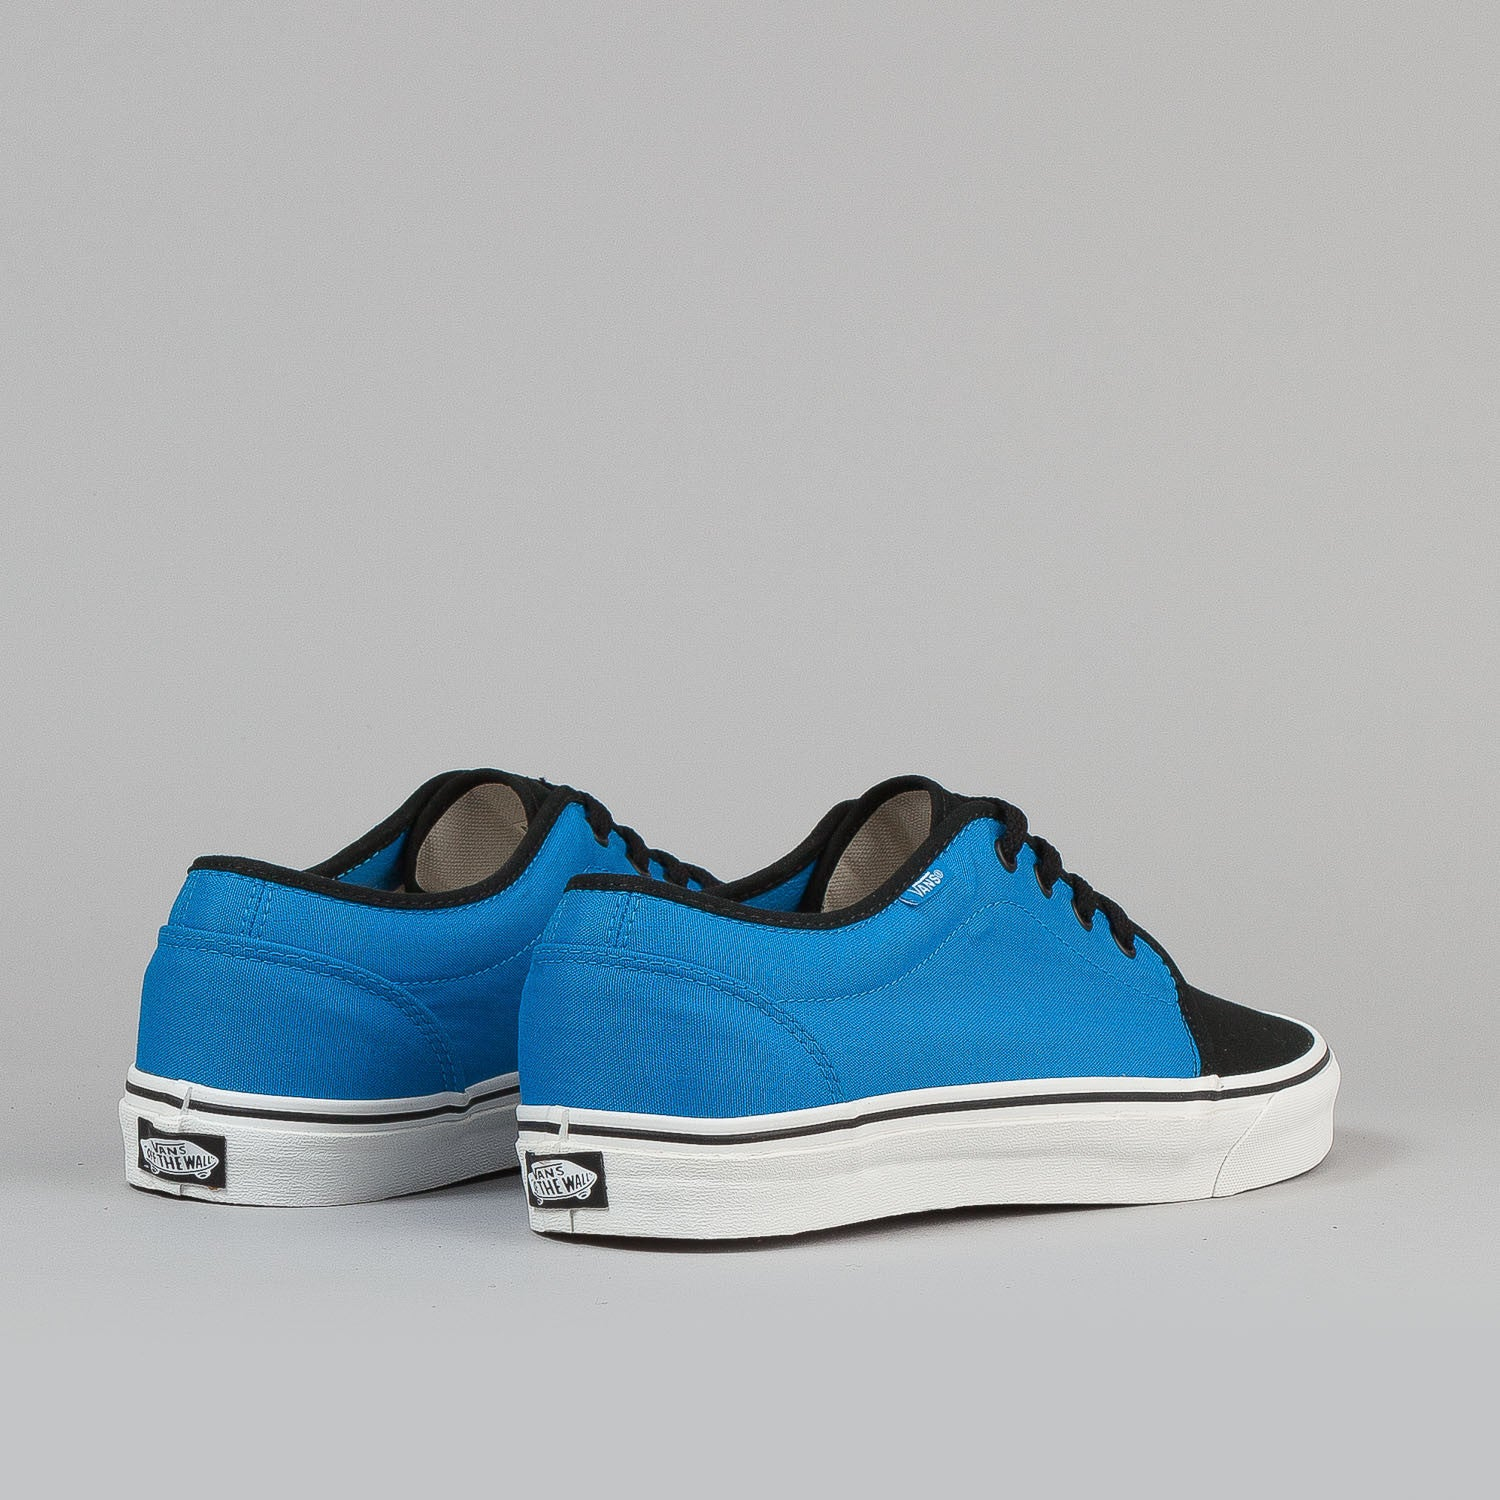 Vans 106 Vulc Shoes - Brilliant Blue / Black